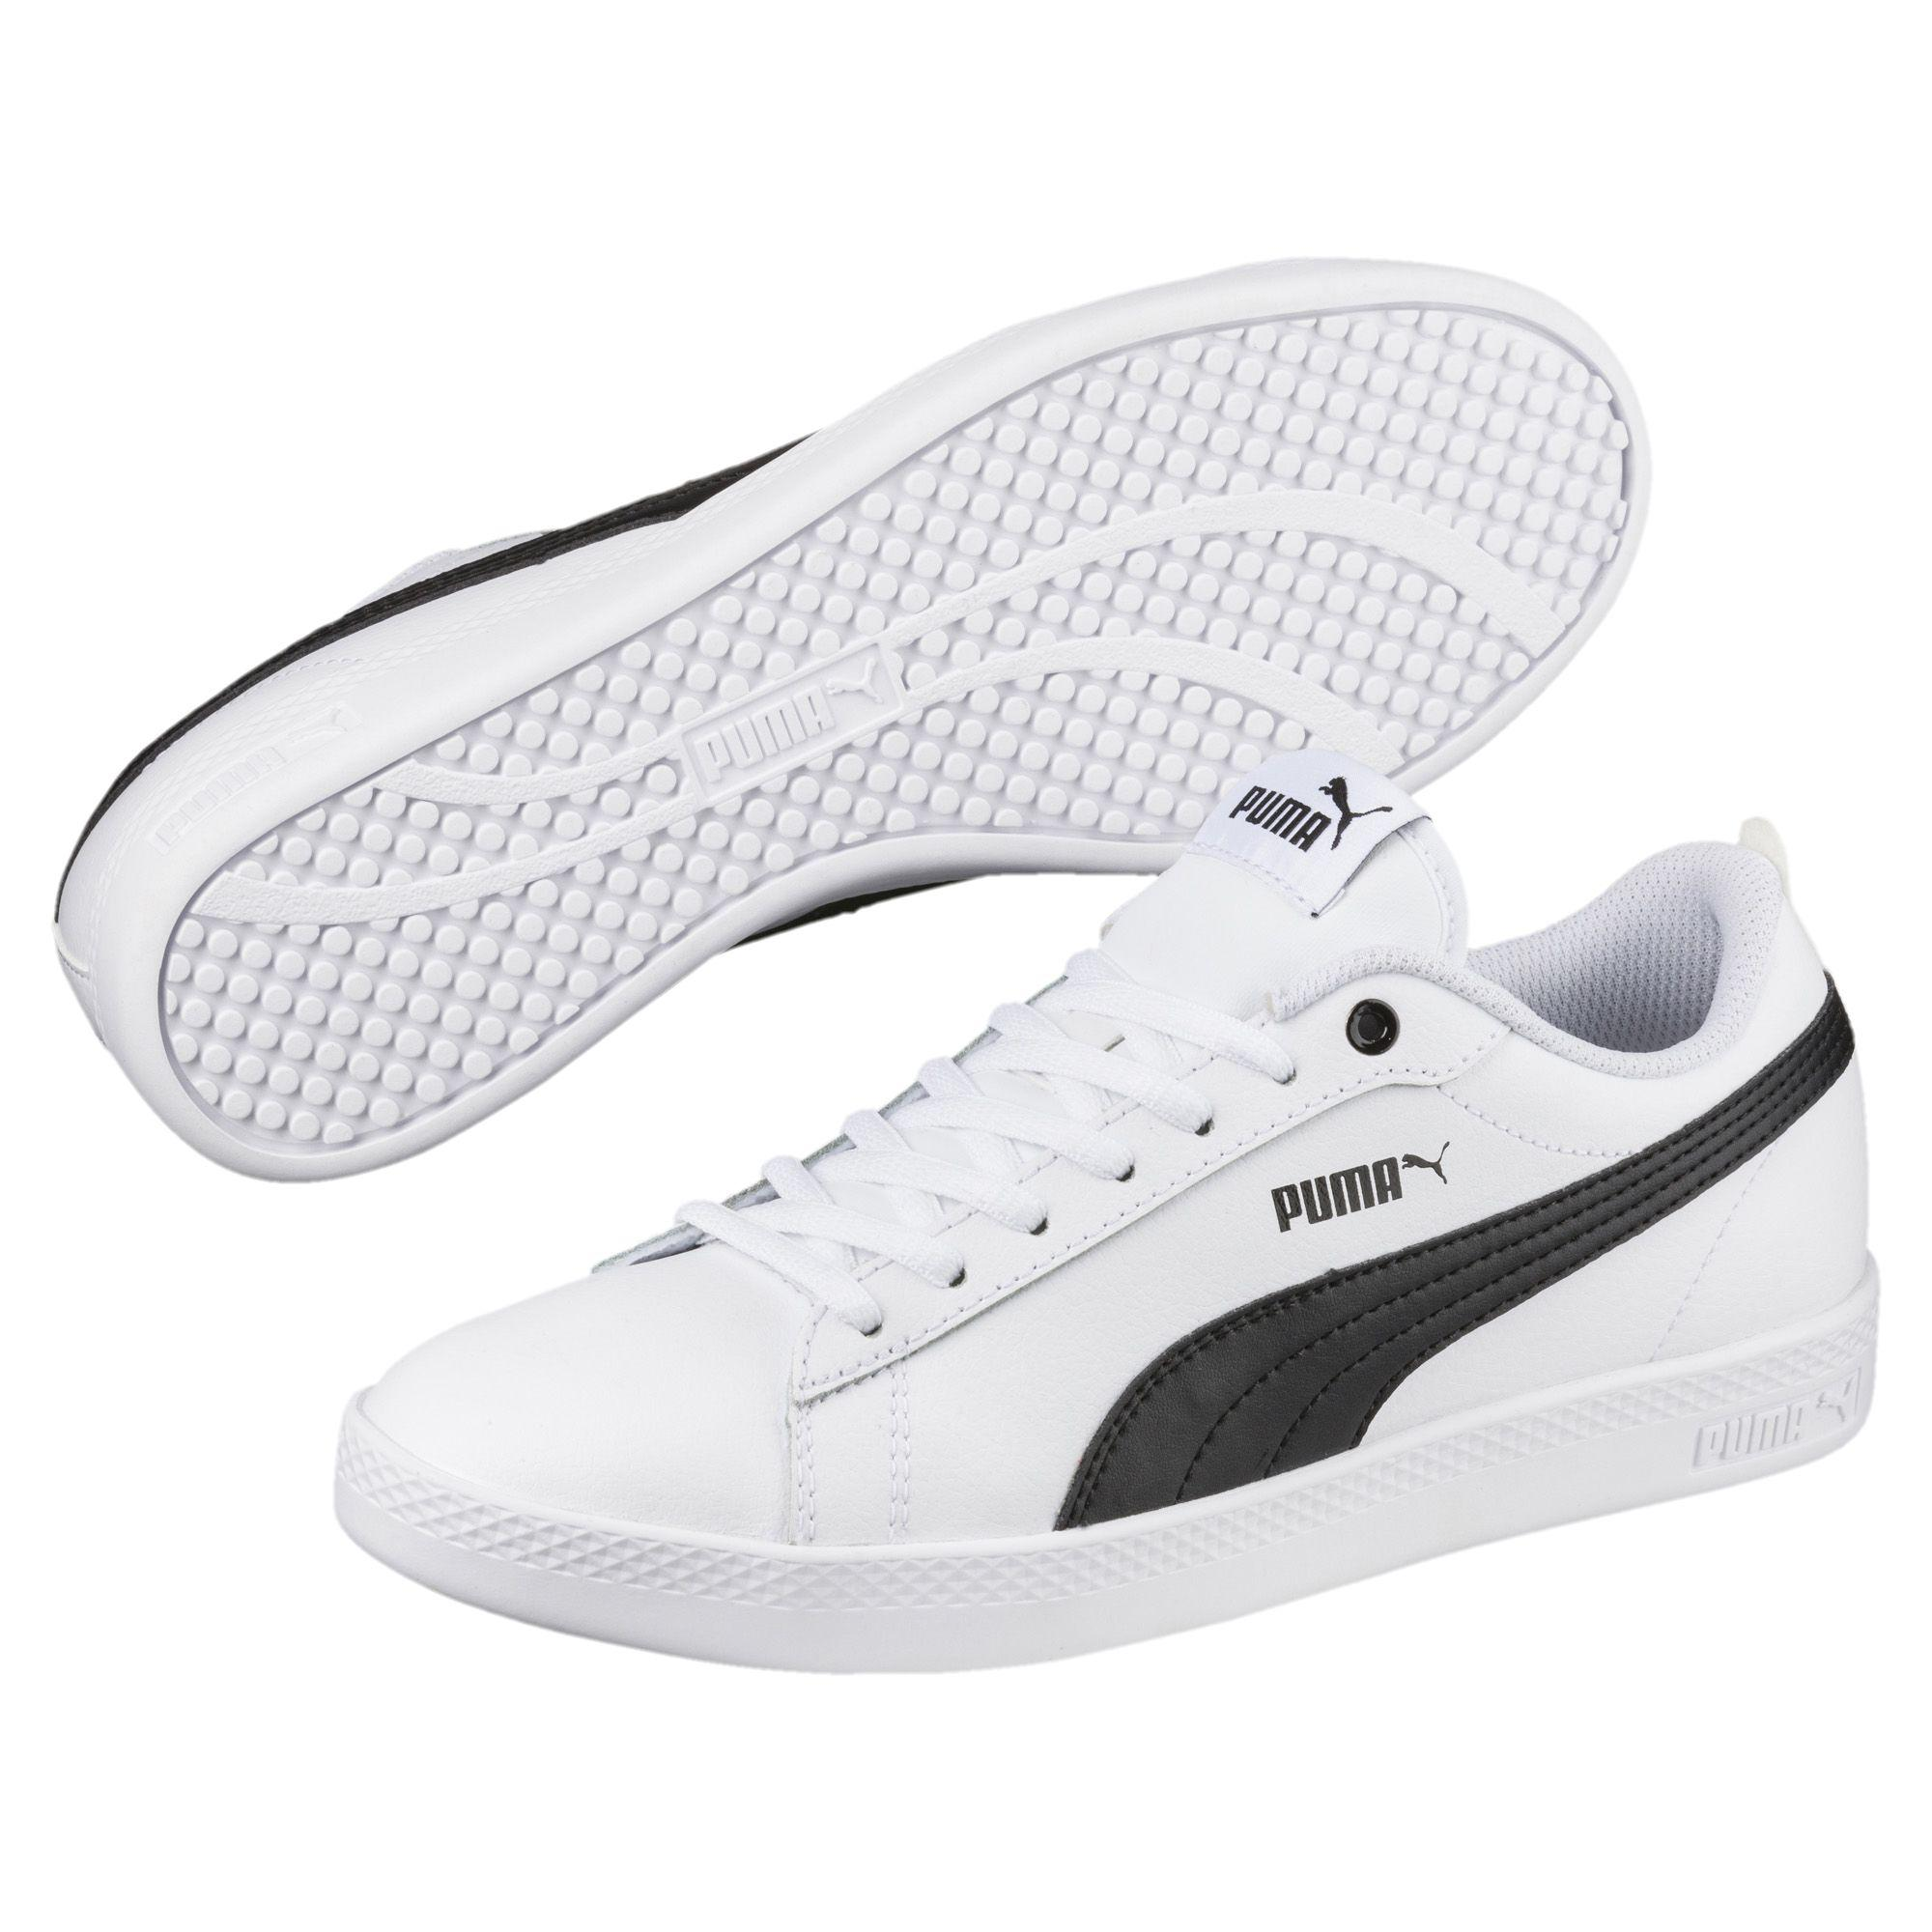 Lyst - PUMA Smash V2 Leather Women s Sneakers in White 756c6a27e